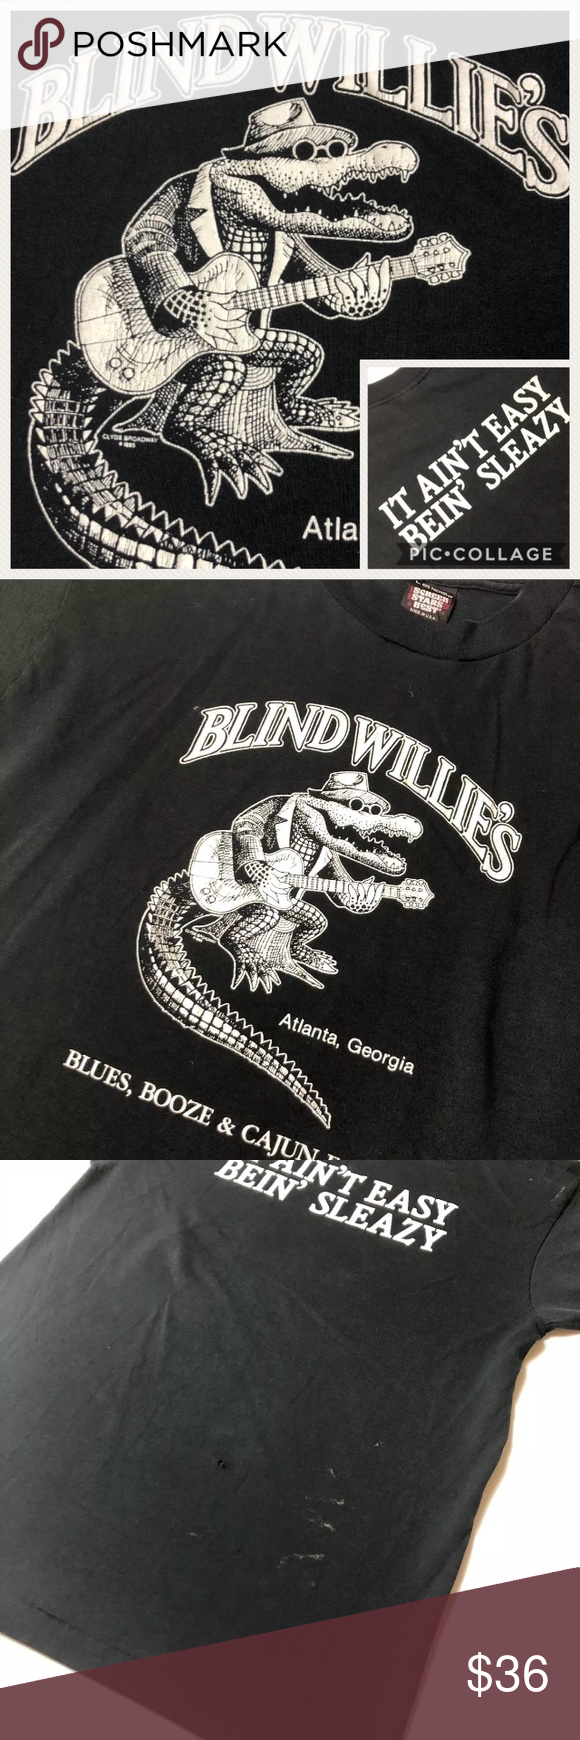 ecef44c7d7a210 Vtg BLIND WILLIES - Being Sleazy Saloon T Shirt Vintage BLIND WILLIES  Blues, Booze &